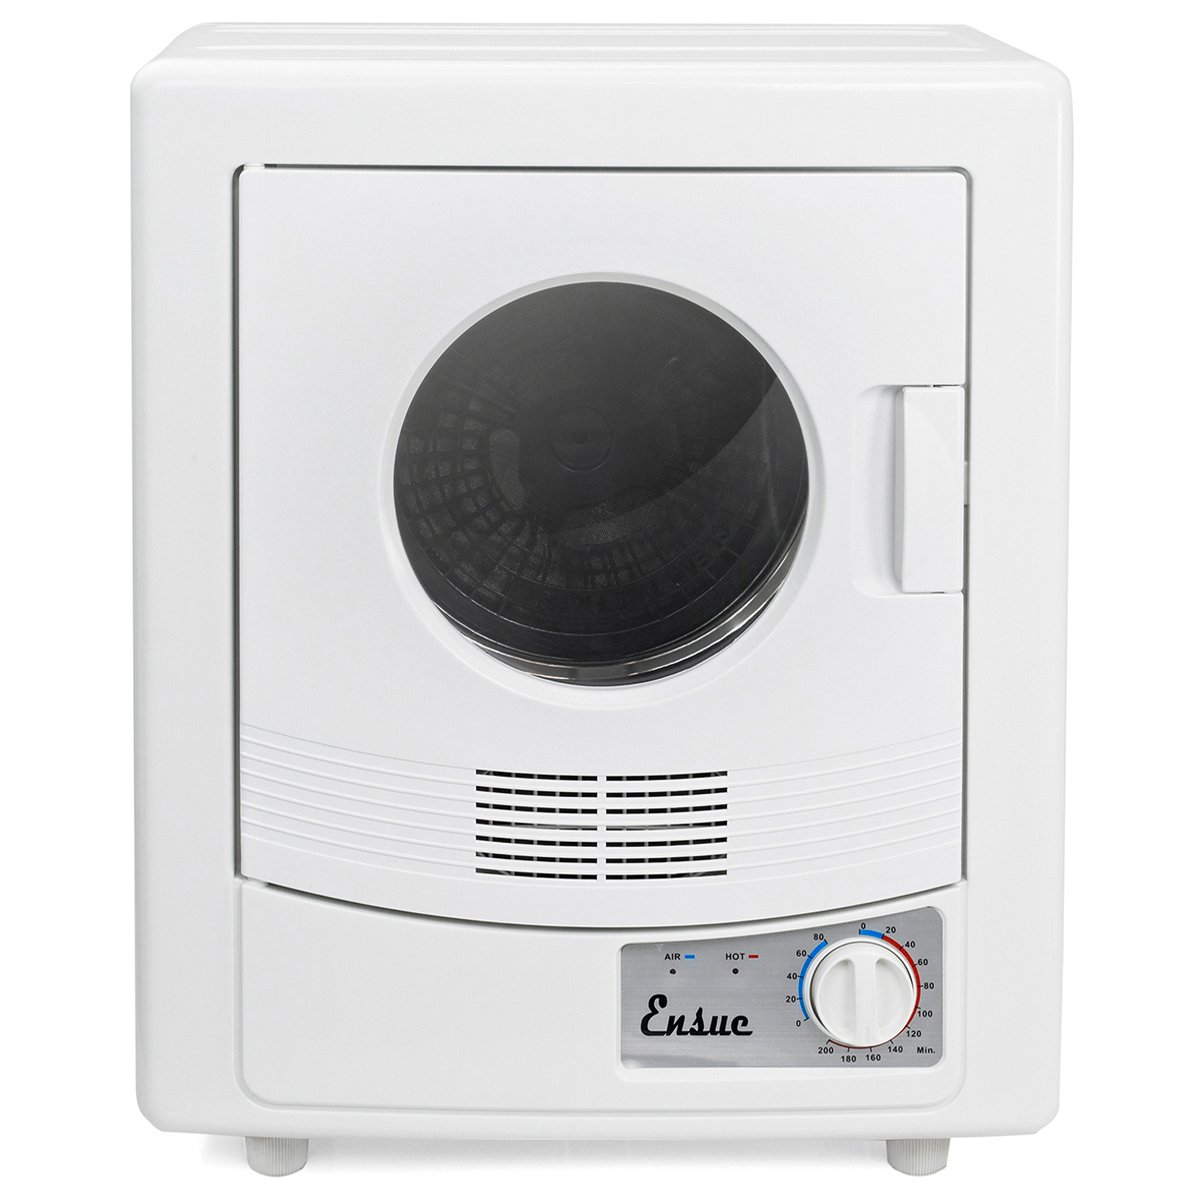 Ensue Portable Electric Tumble Dryer, Compact Stainless Steel